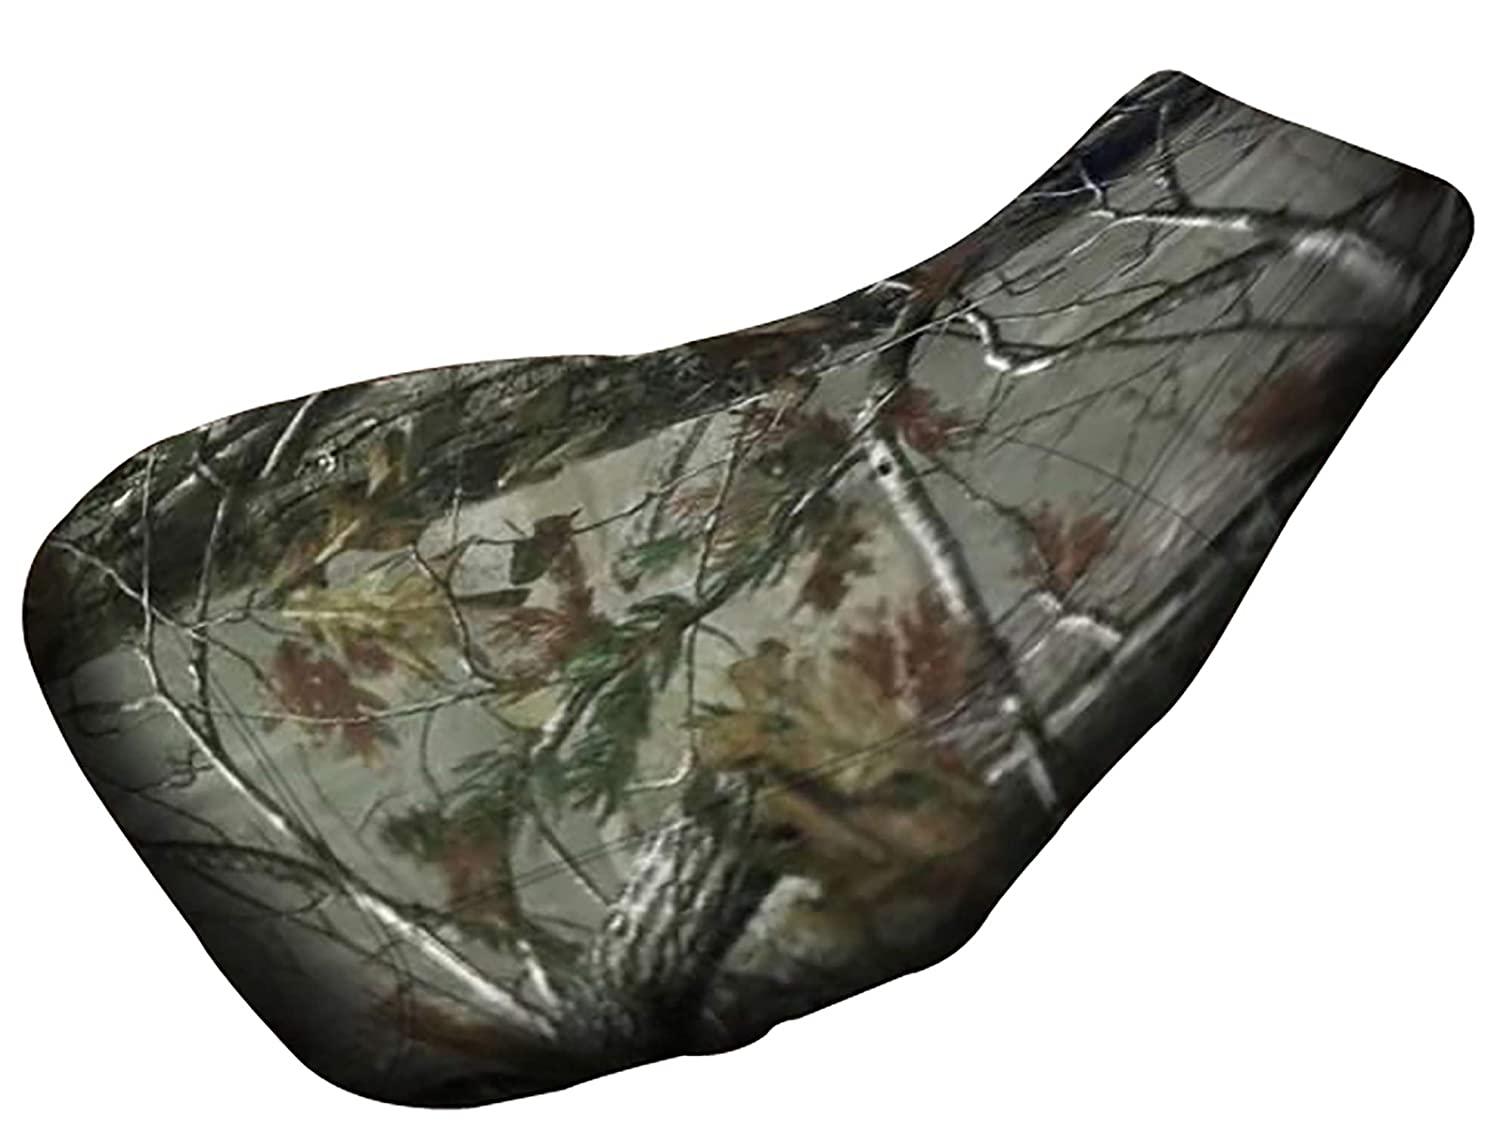 Moto Gear Graphics Seat Cover Compatible With Yamaha Grizzly 600 98-02 Camo ATV Seat Cover #MGGSL03385